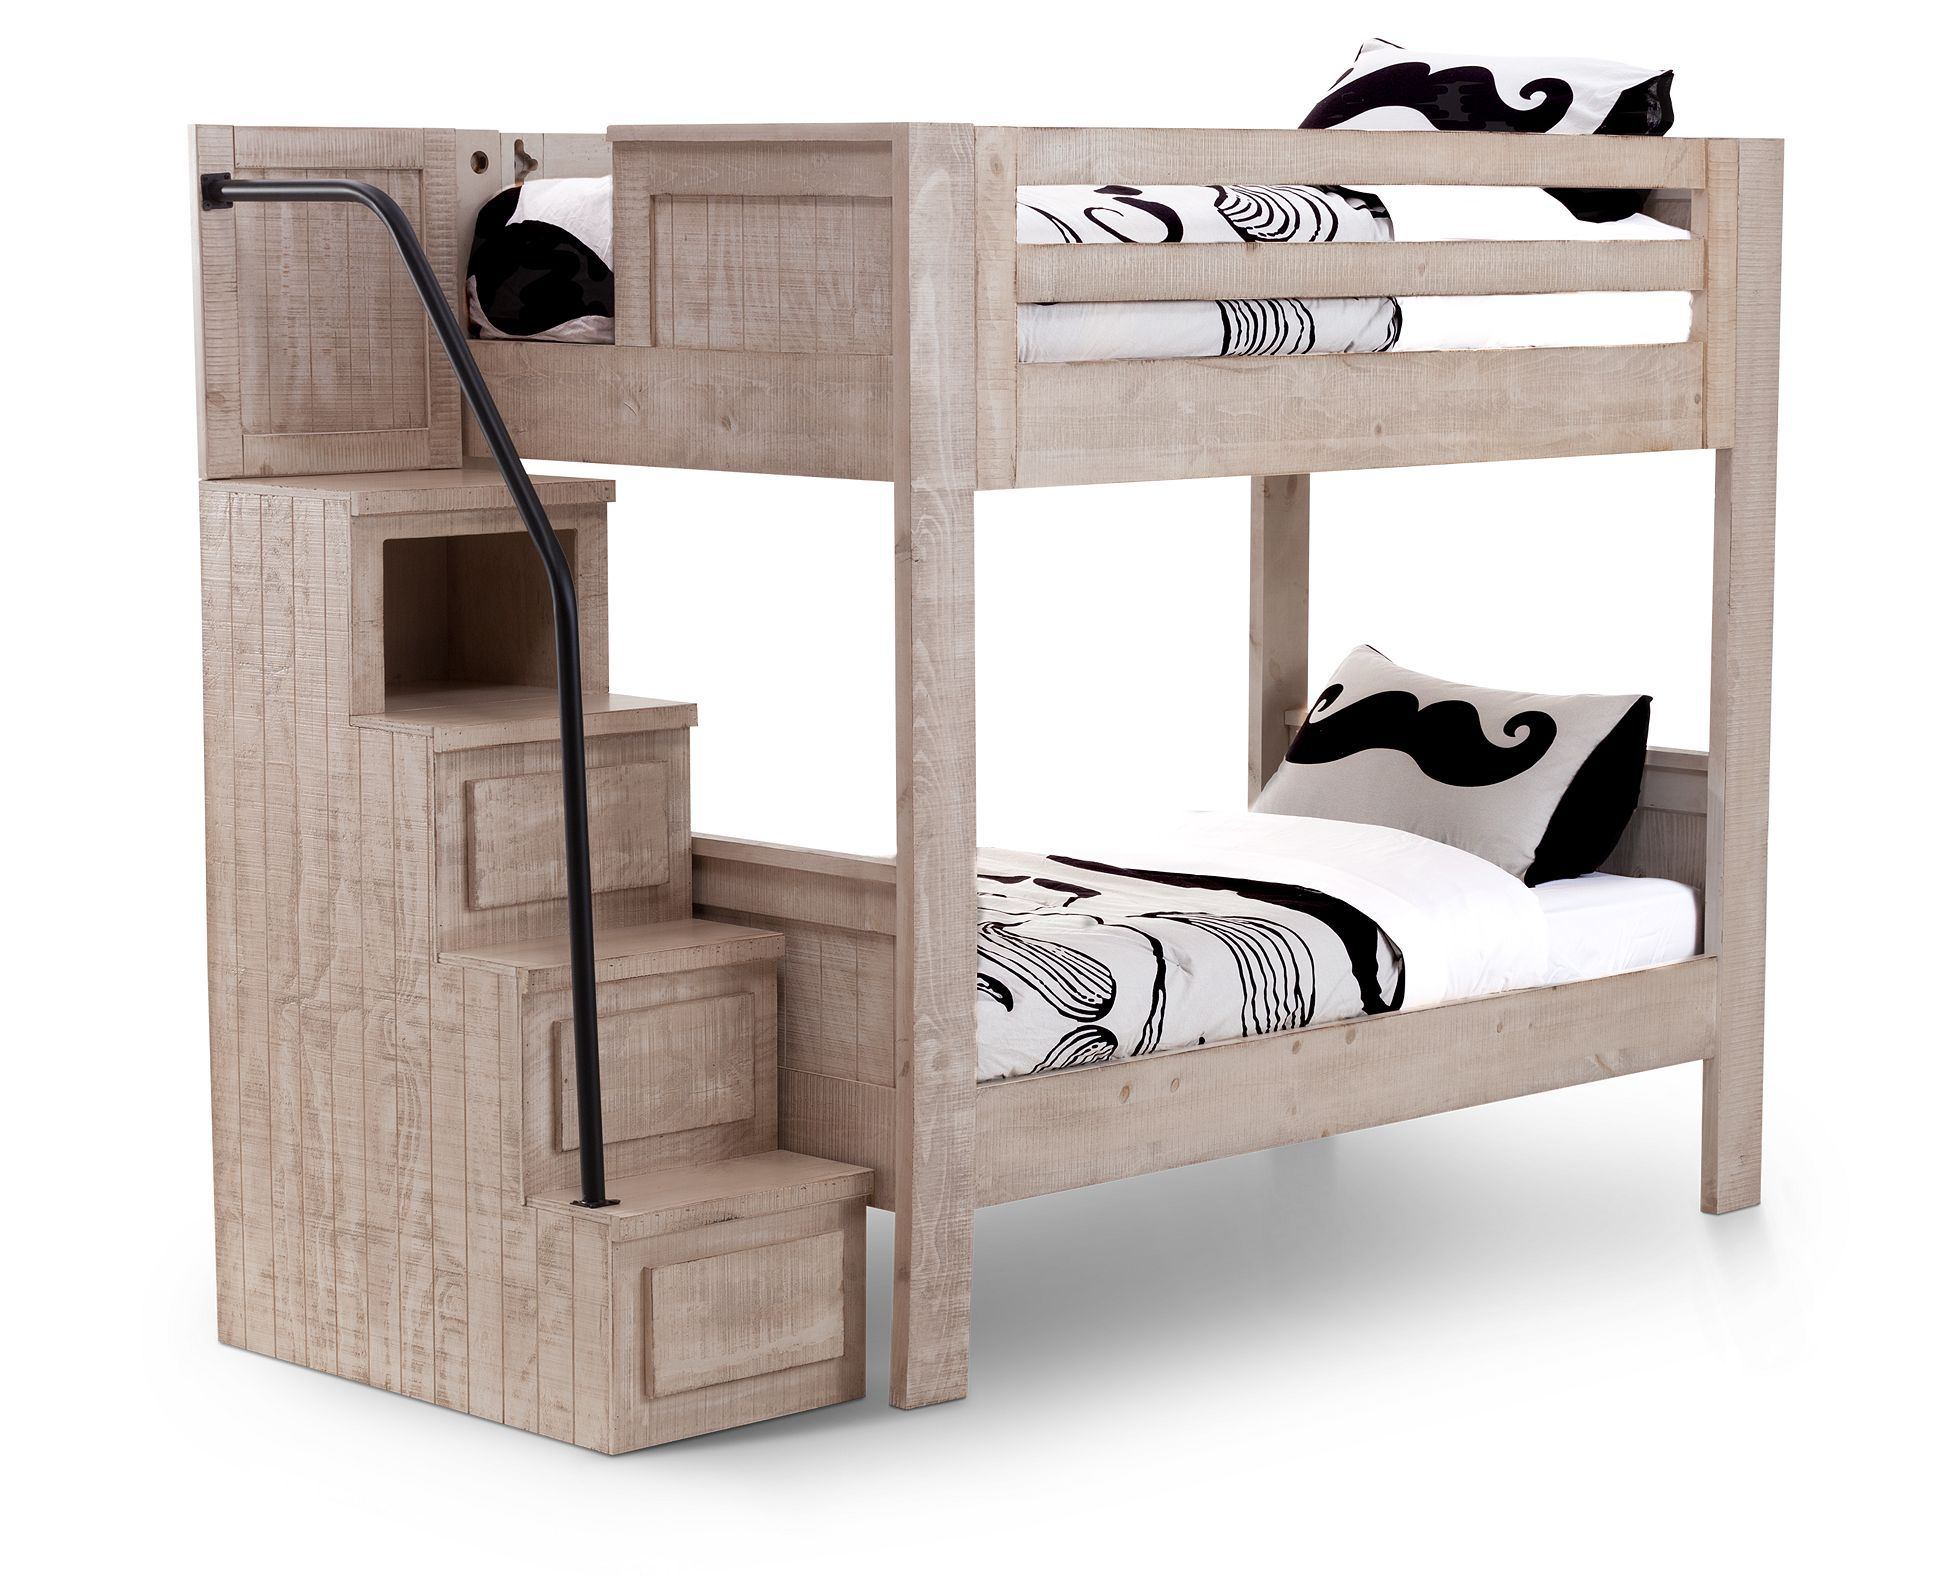 Beds Bristol Valley Bunk Bed With Stairs Stack Up On Country Styling Bunk Beds Bunk Beds With Stairs Bed